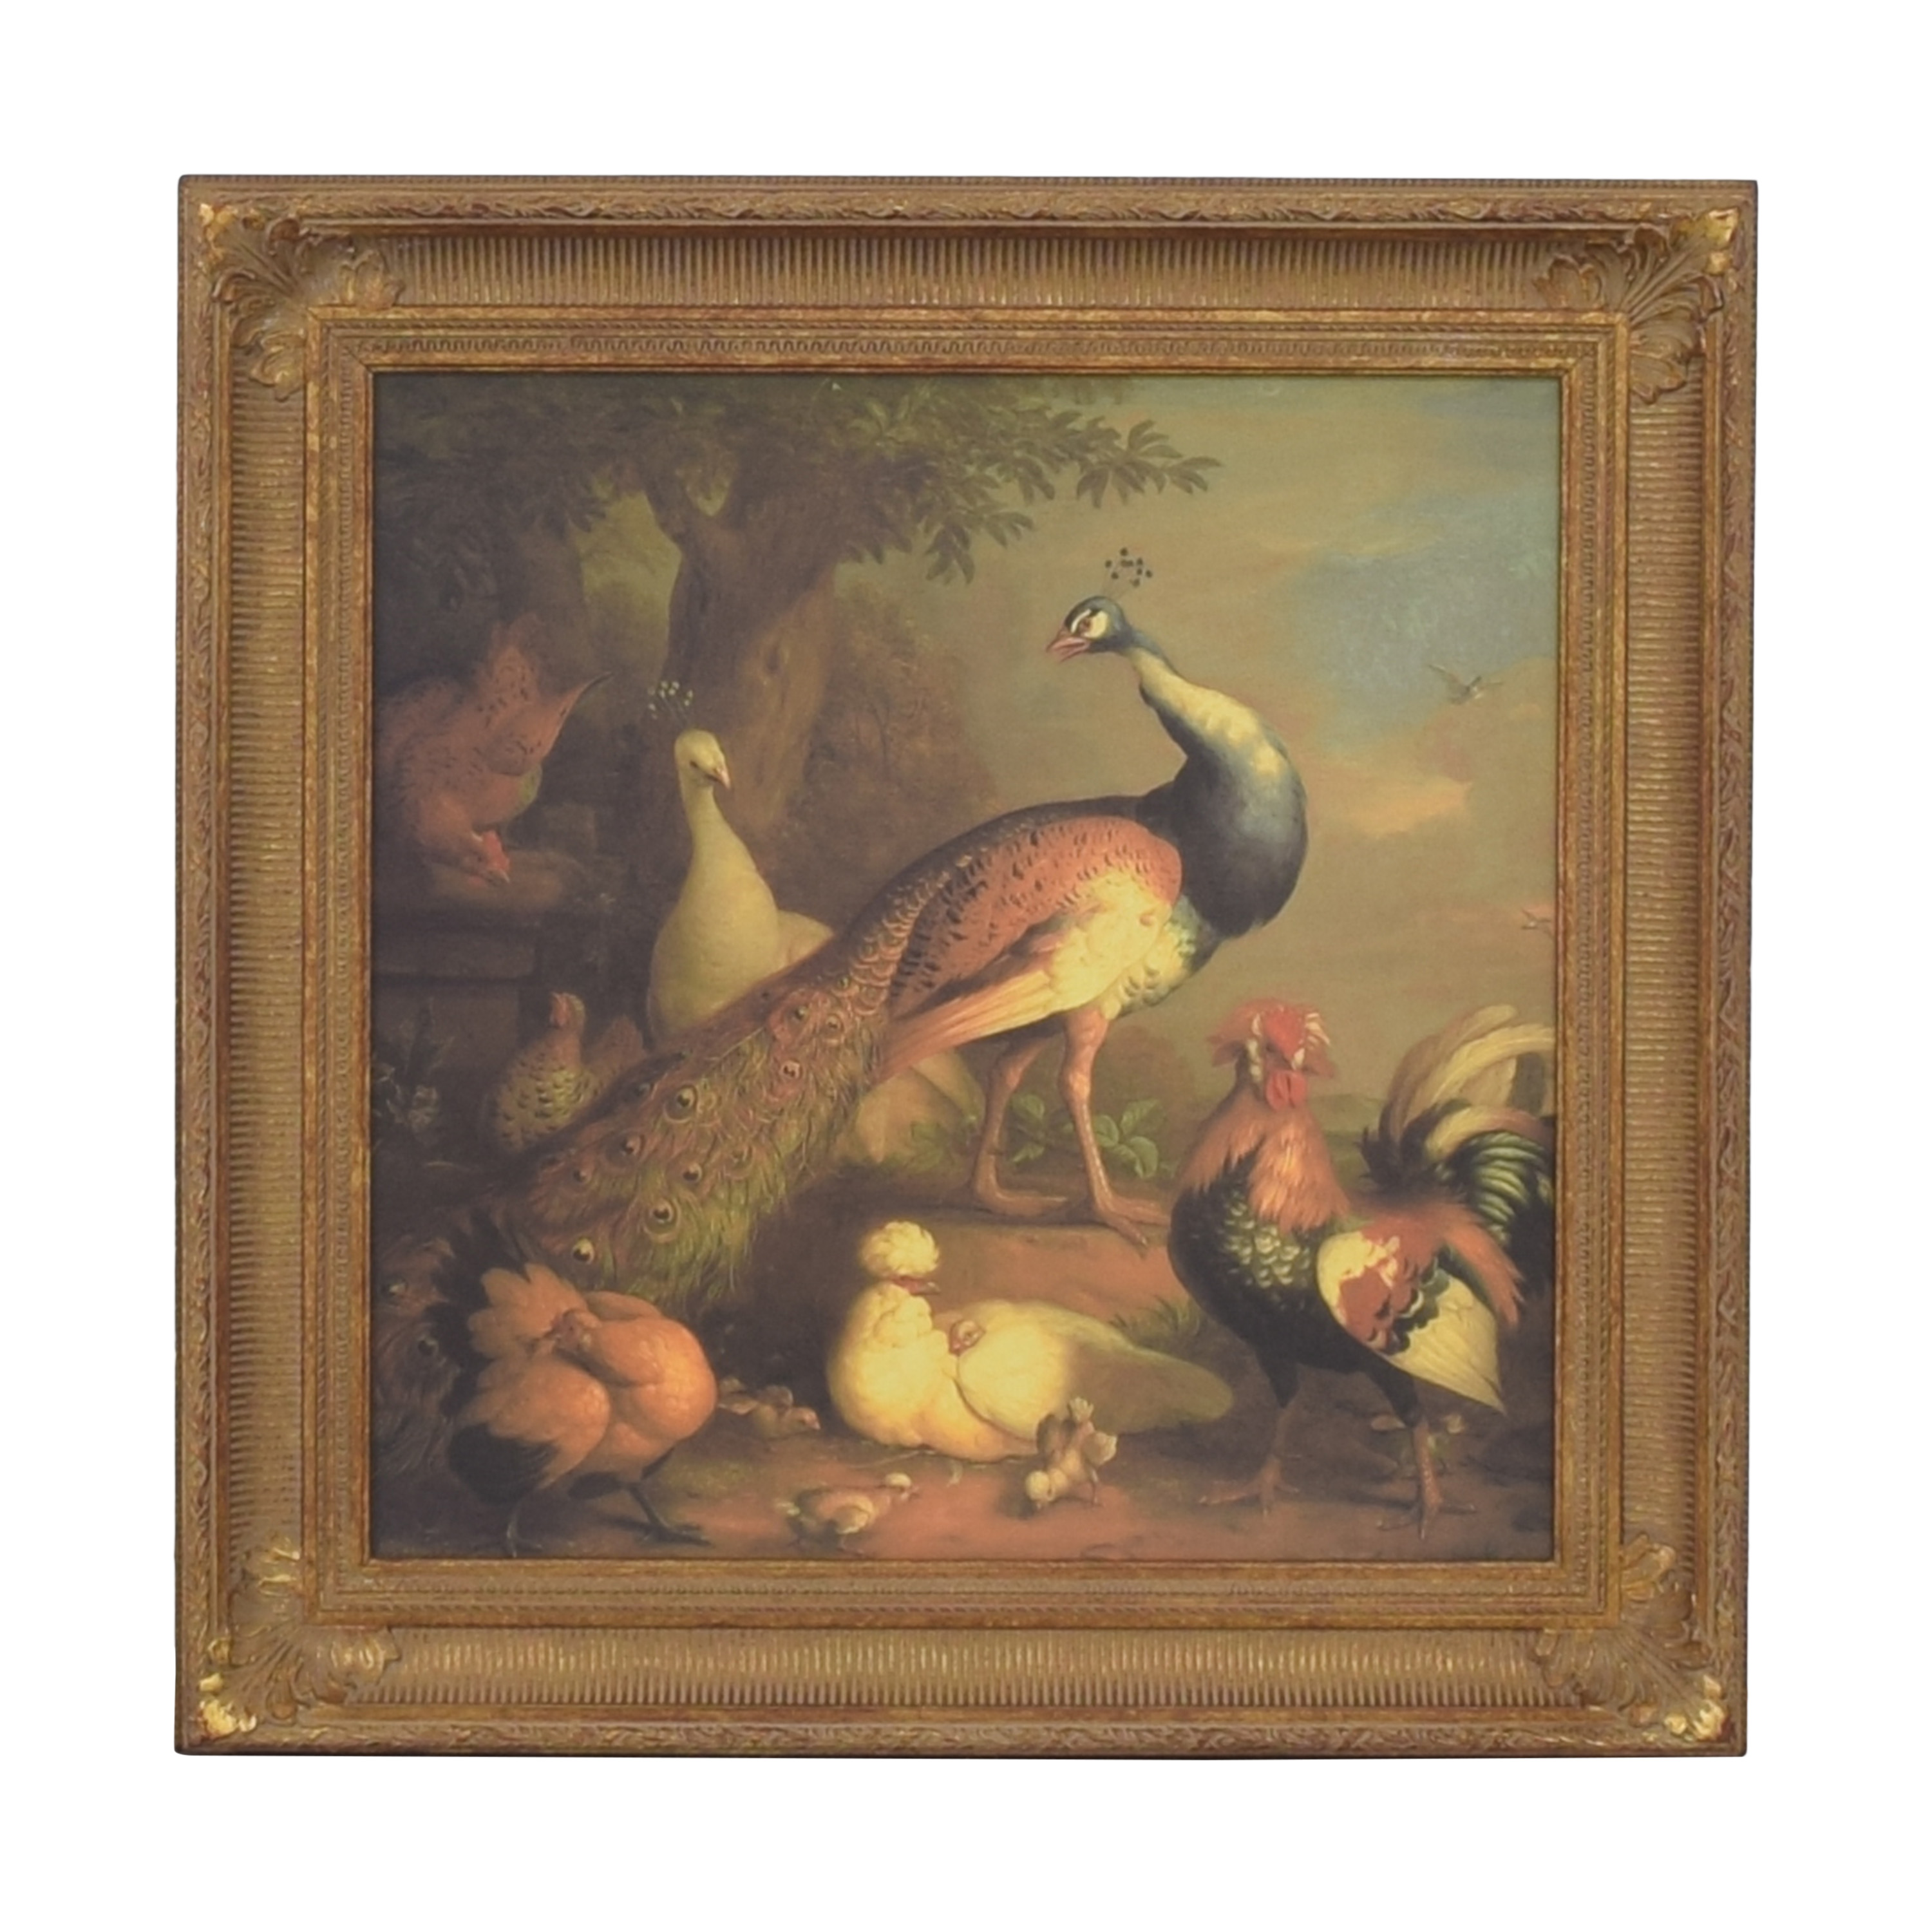 buy Ethan Allen a Peacock, a Peahen, and Poultry in a Landscape Wall Art Ethan Allen Decor